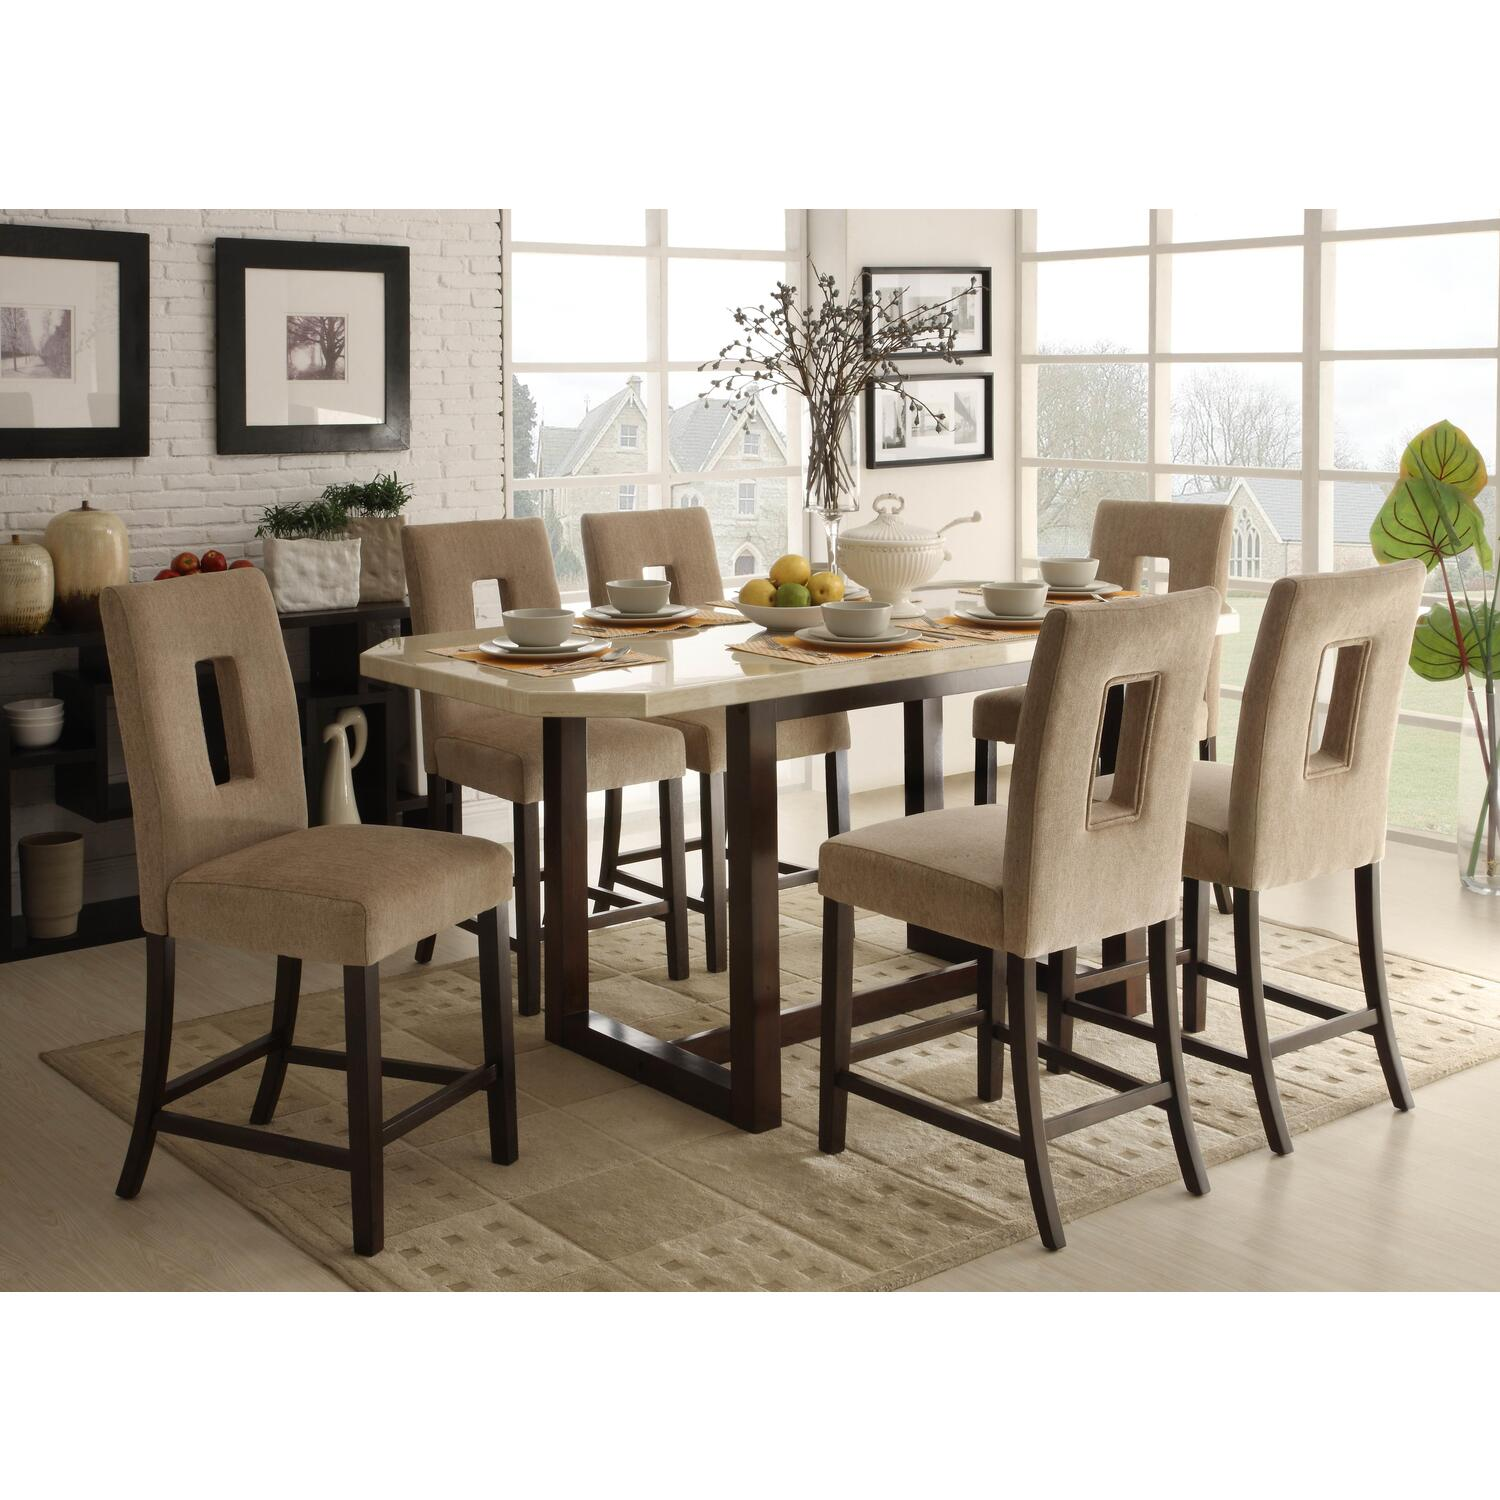 Homelegance Reiss Counter Height Table Set By OJ Commerce